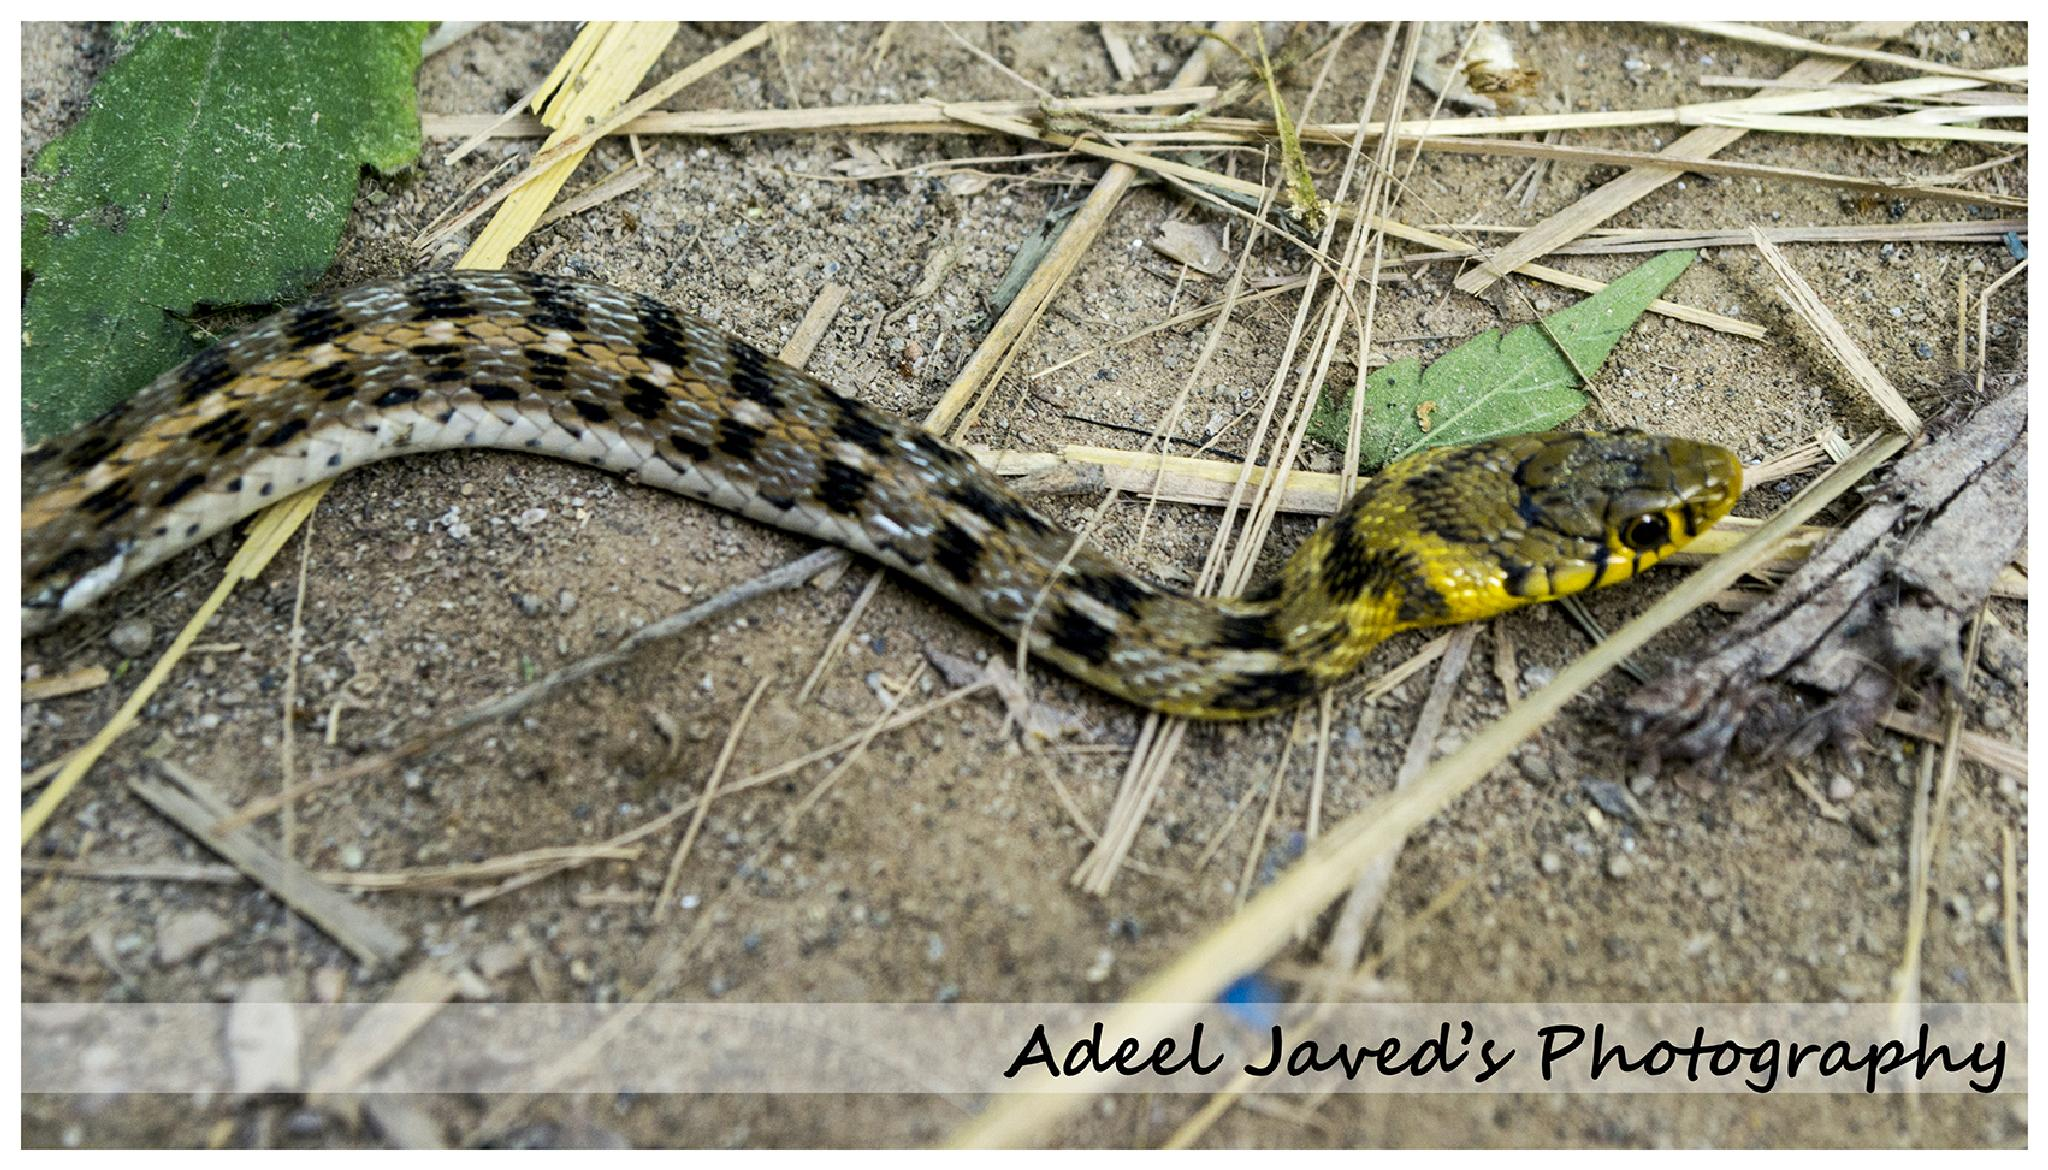 Buff Striped Keelback Snake by Adeel Javed